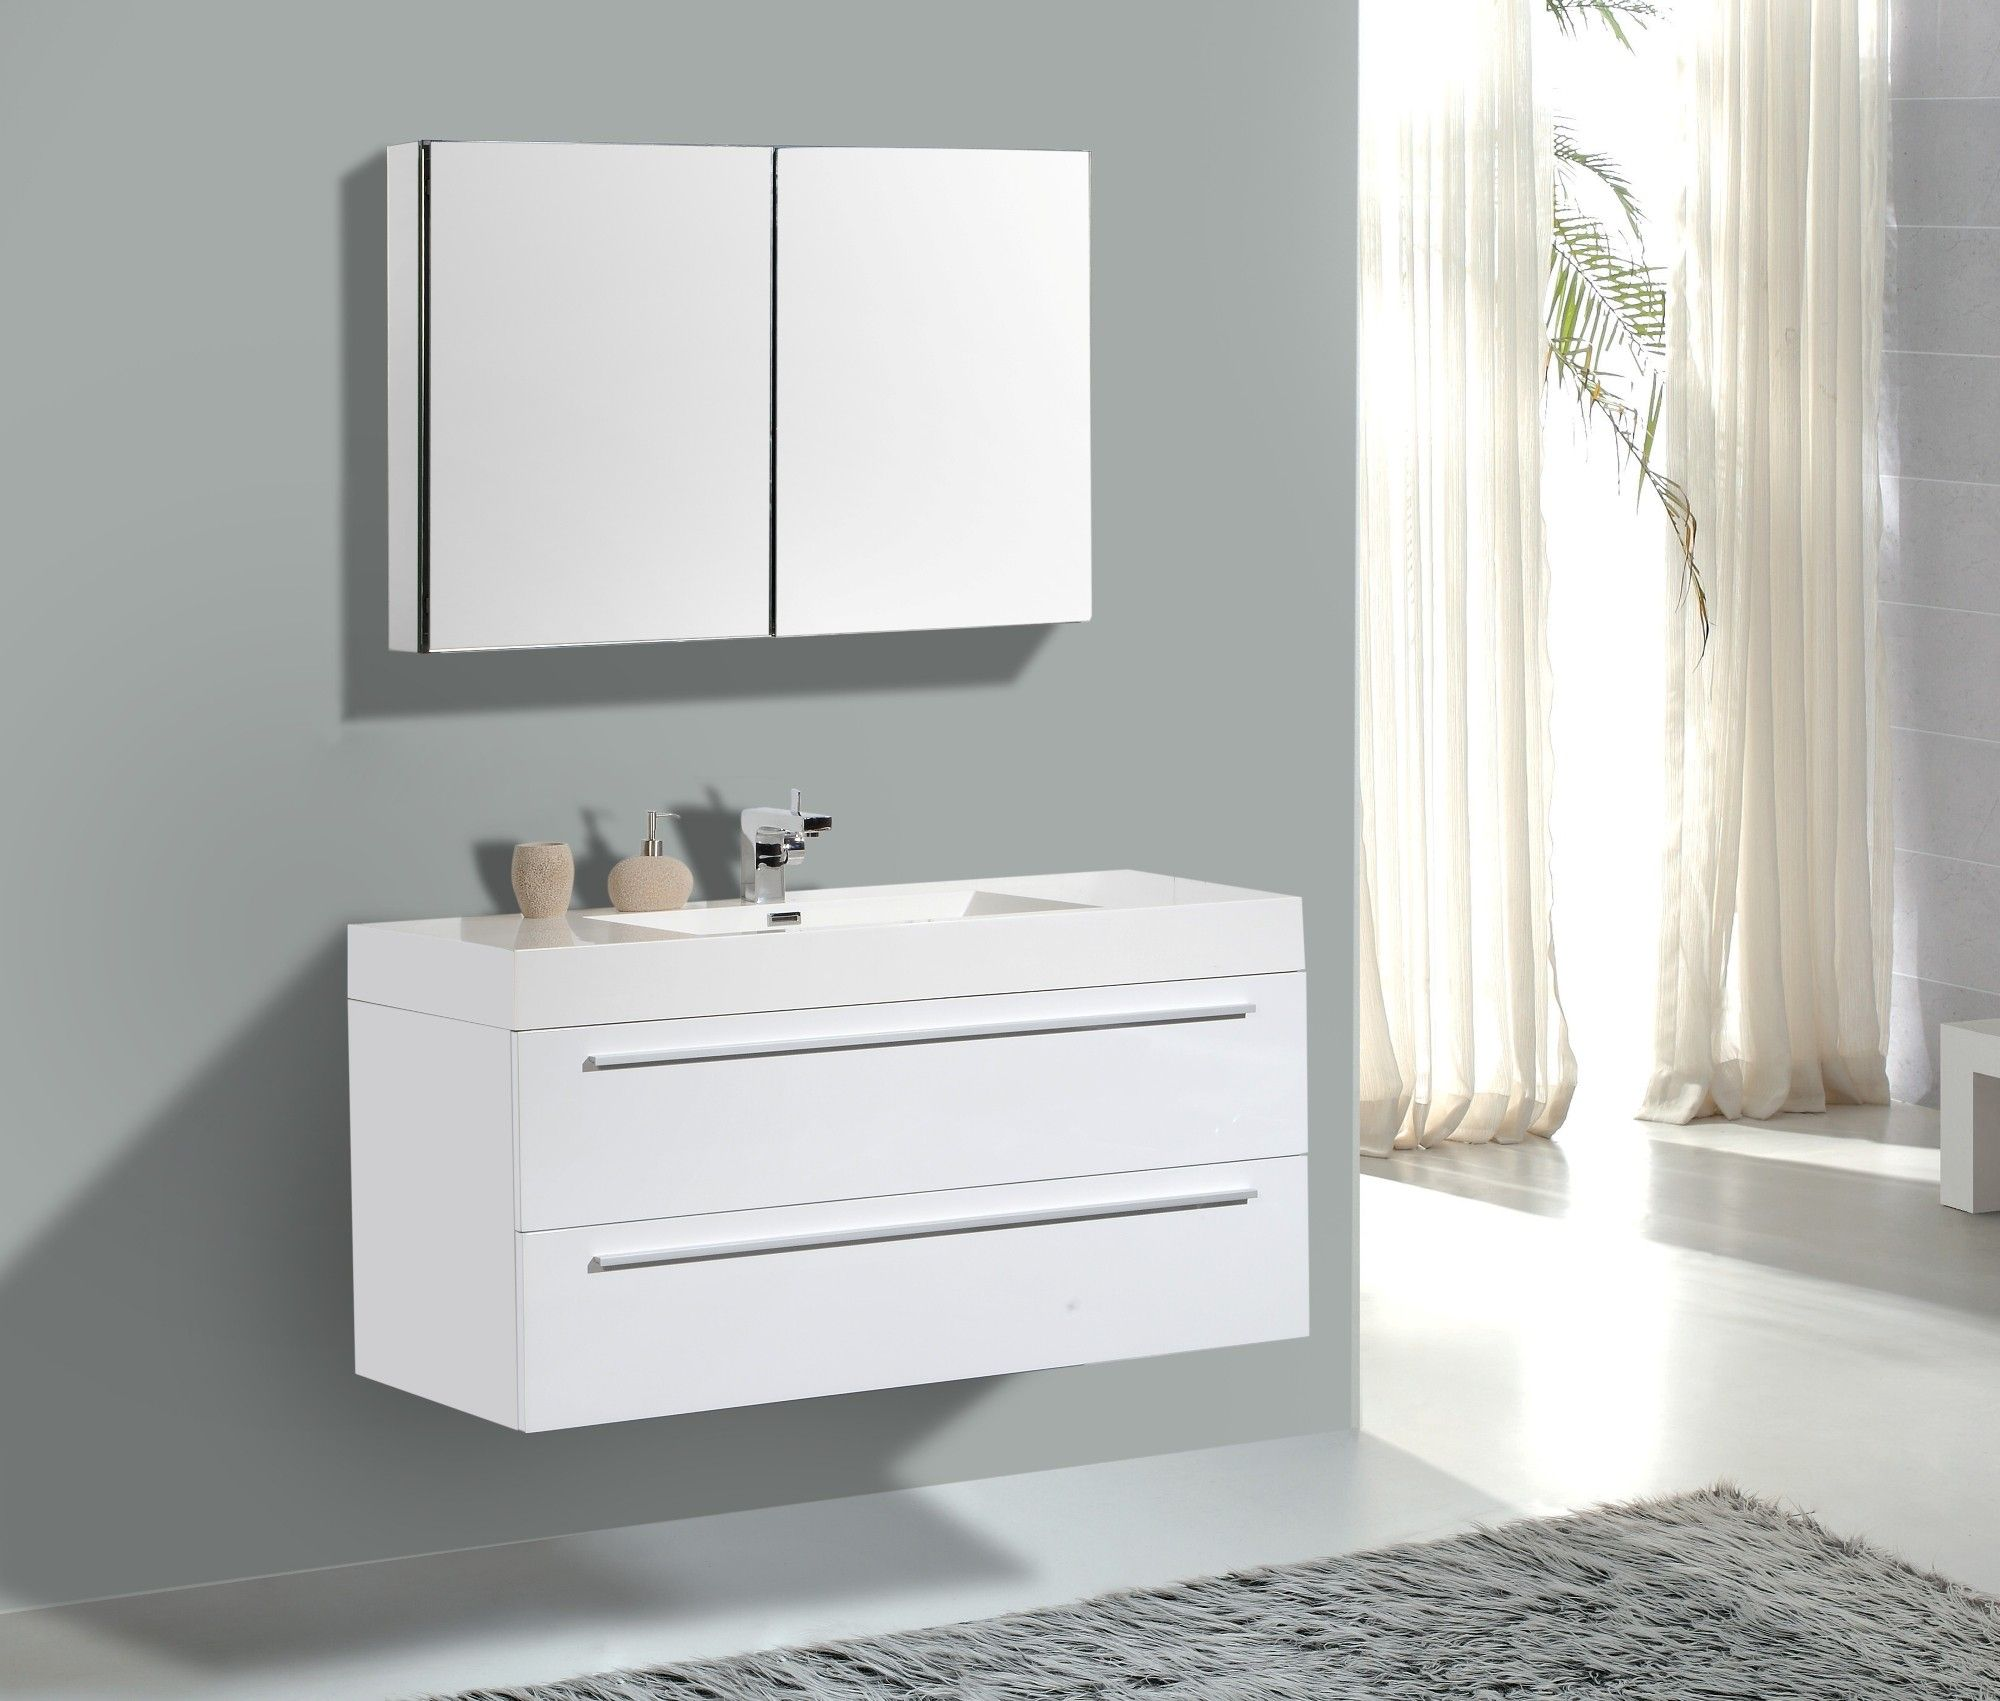 Modern bathroom cabinet - Aqua Decor Maya 47 Modern Bathroom Vanity Set W Medicine Cabinet White